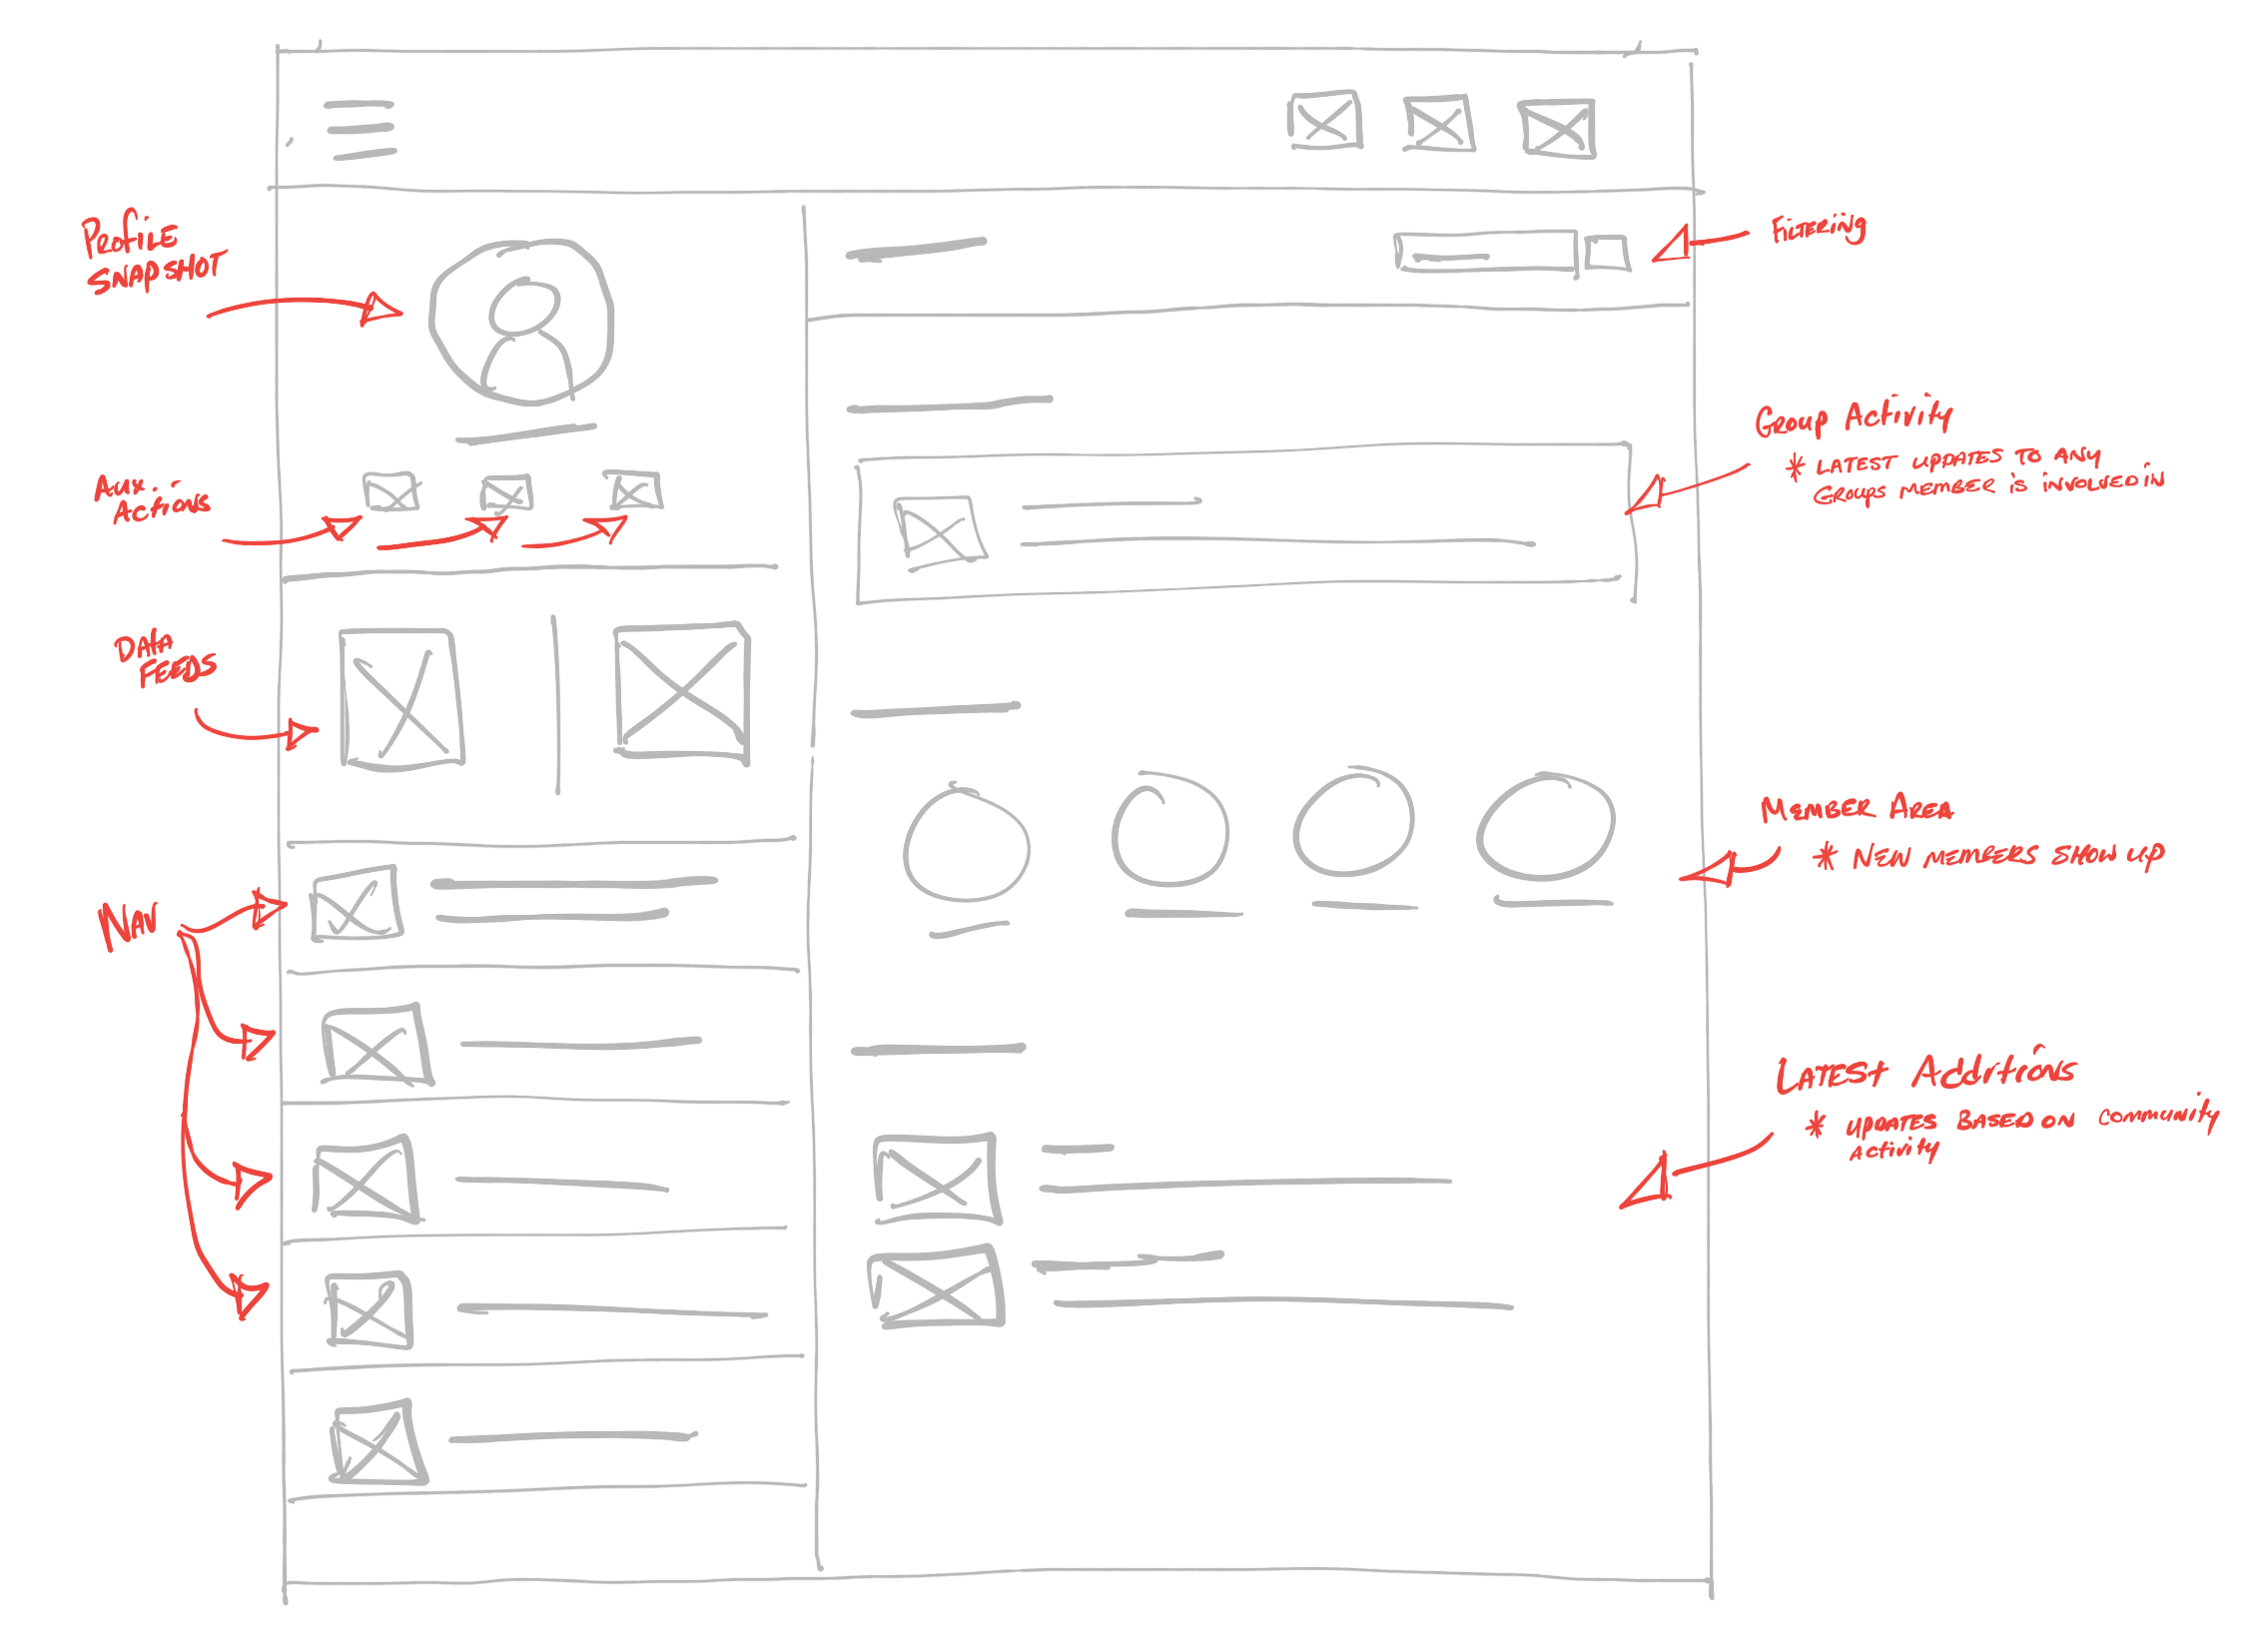 connectd-dashboard-sketch1.png